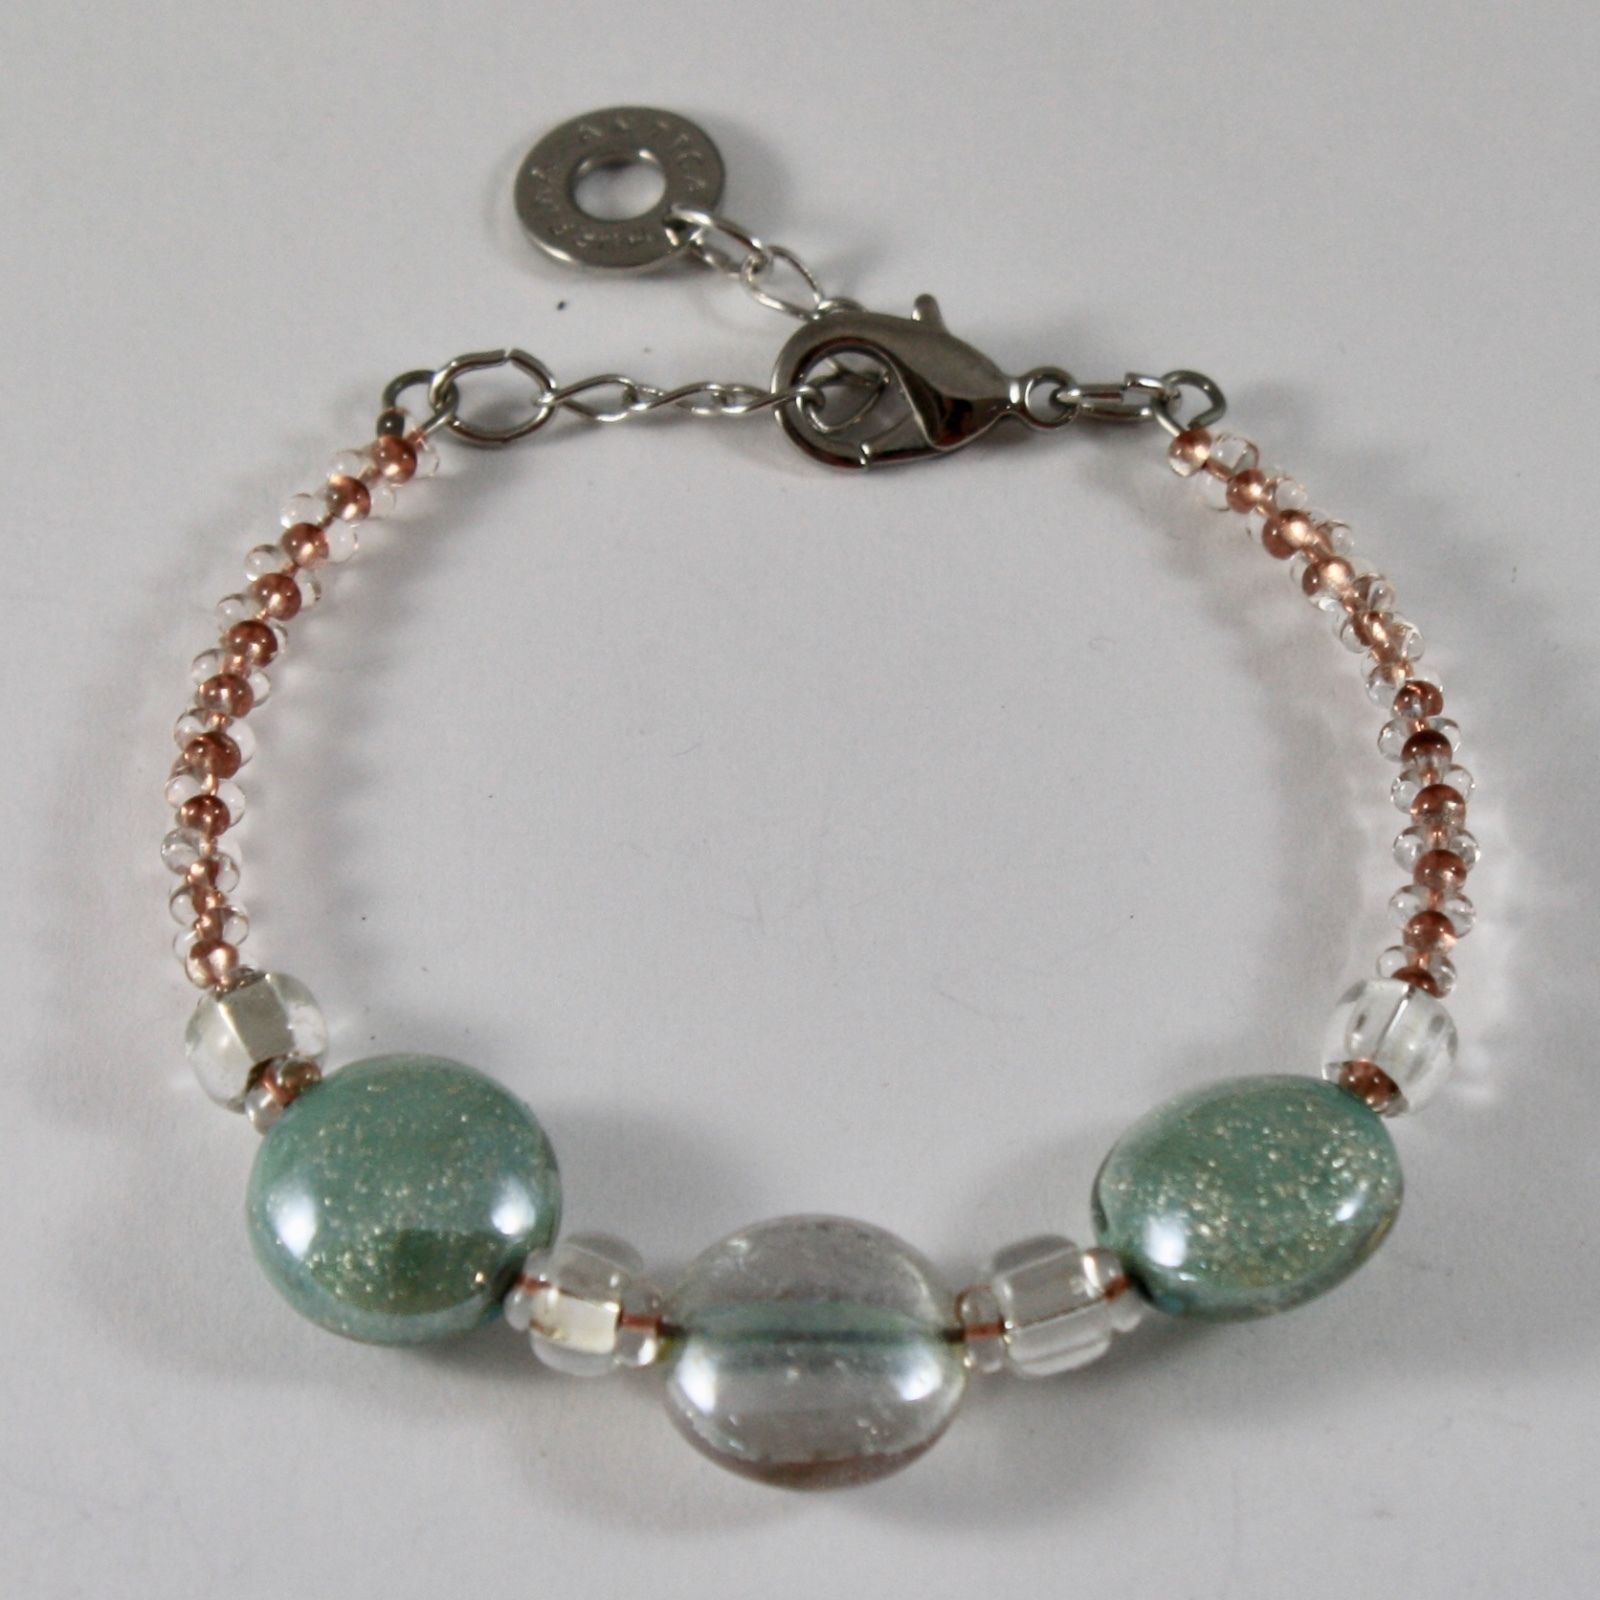 ANTICA MURRINA VENEZIA REDENTORE BRACELET WITH PINK AND GREEN MURANO GLASS DISCS